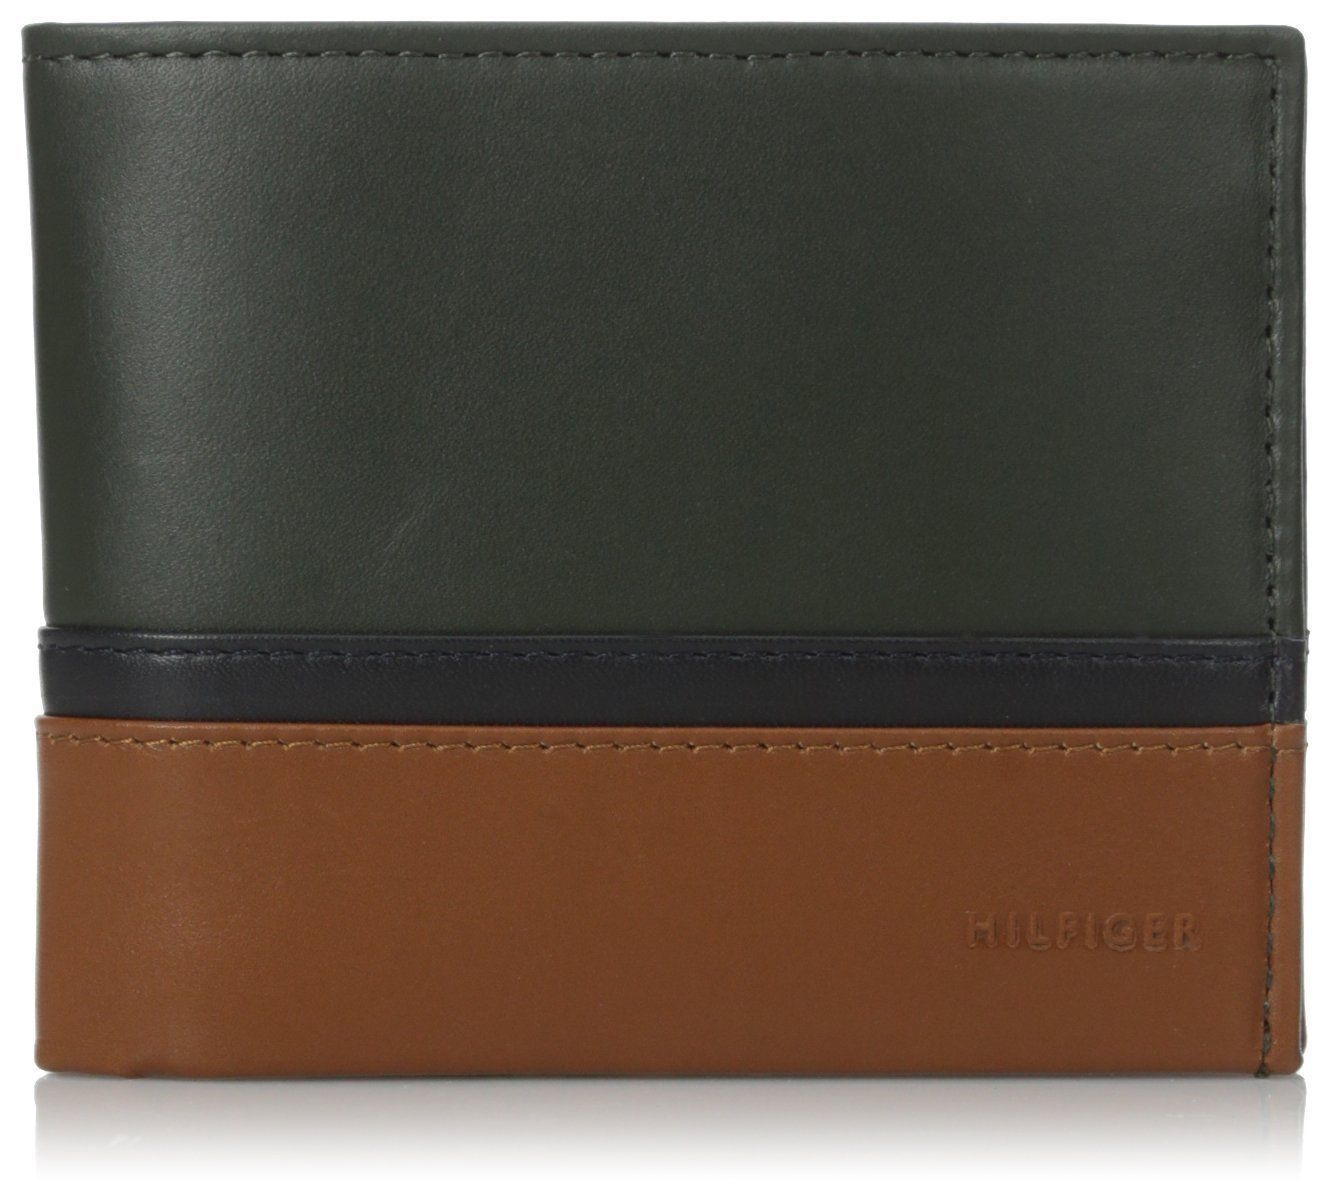 NEW TOMMY HILFIGER MEN'S PREMIUM LEATHER DOUBLE BILLFOLD WALLET OLIVE 31TL13X041